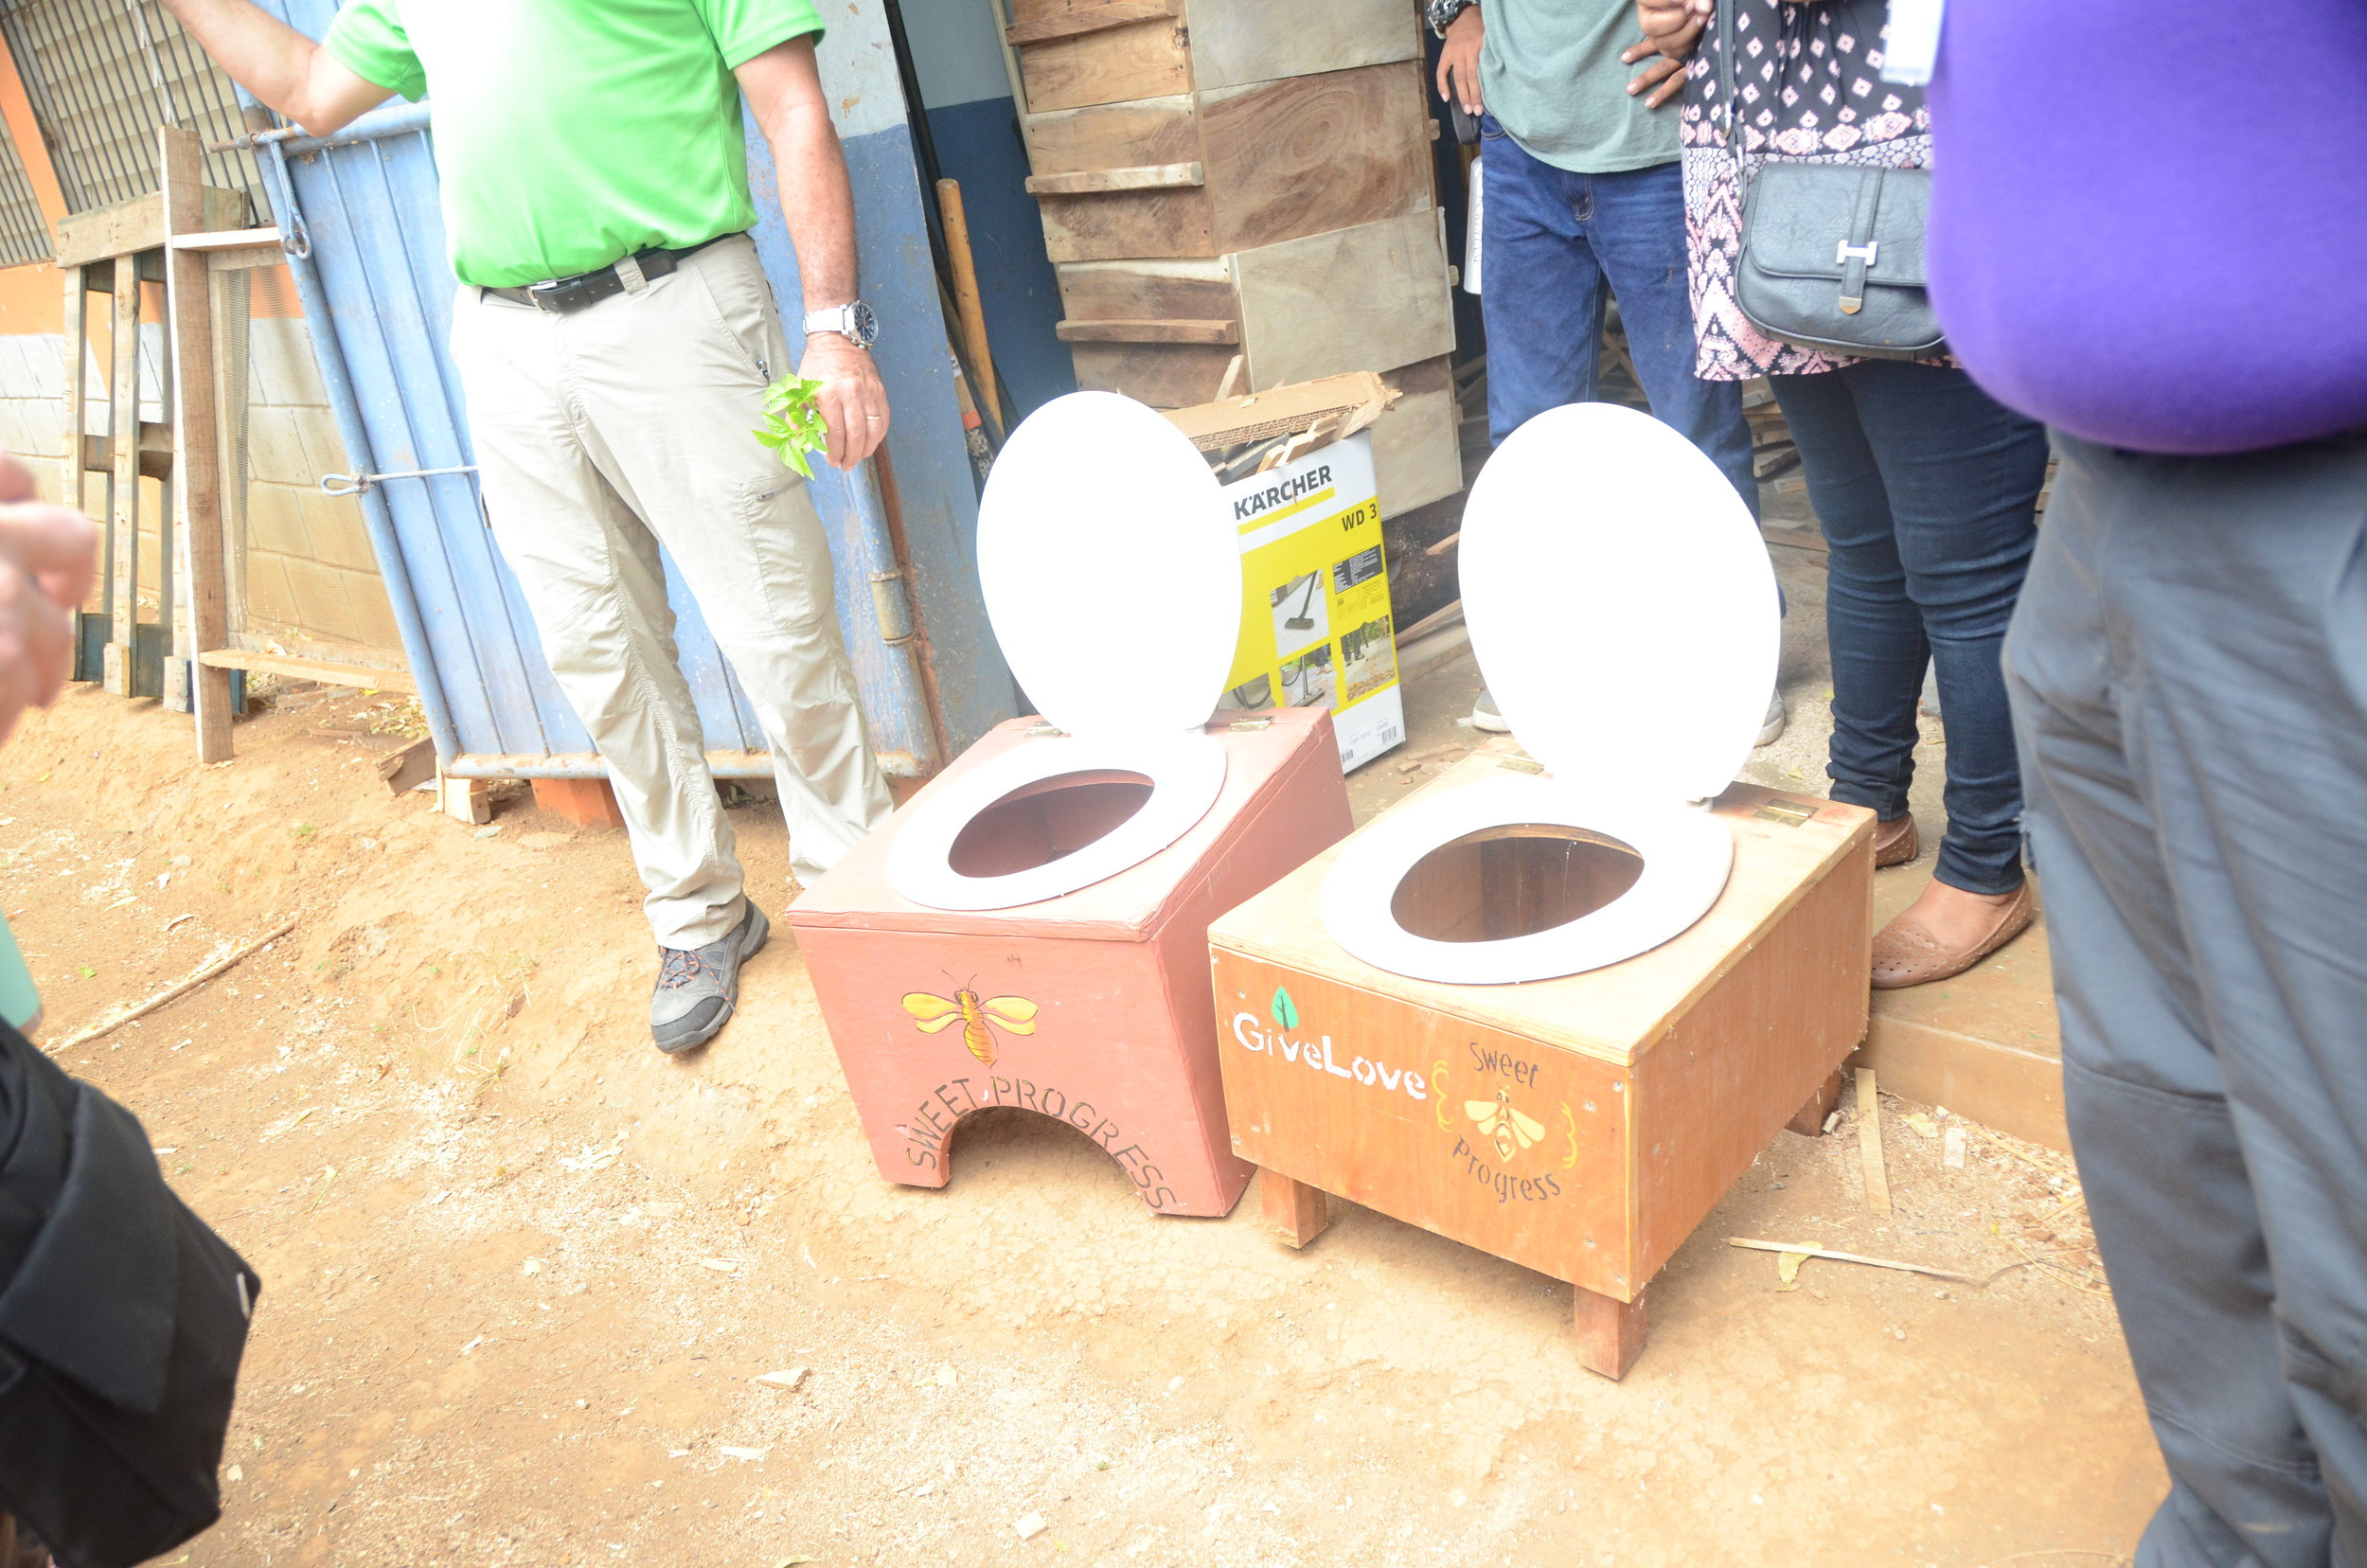 They are also making these toilets from the boxes. They use the boxes in step one to making things, after they master making things from the boxes they move on to wood. The toilet on your right is wooden. A person uses this toilet, cat style. with a bucket full of saw dust underneath, it's a dry toilet.